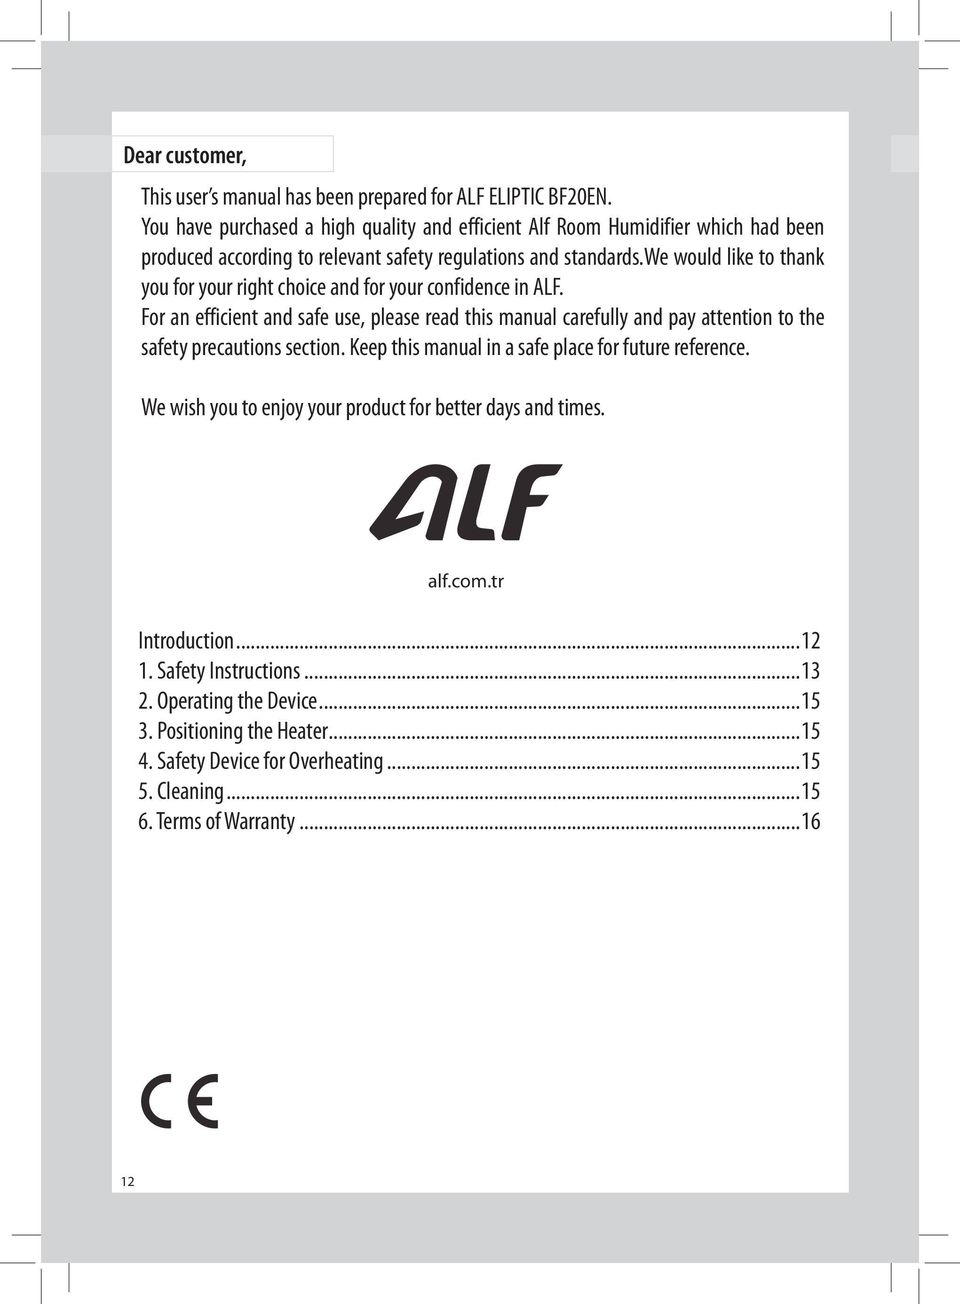 we would like to thank you for your right choice and for your confidence in ALF.